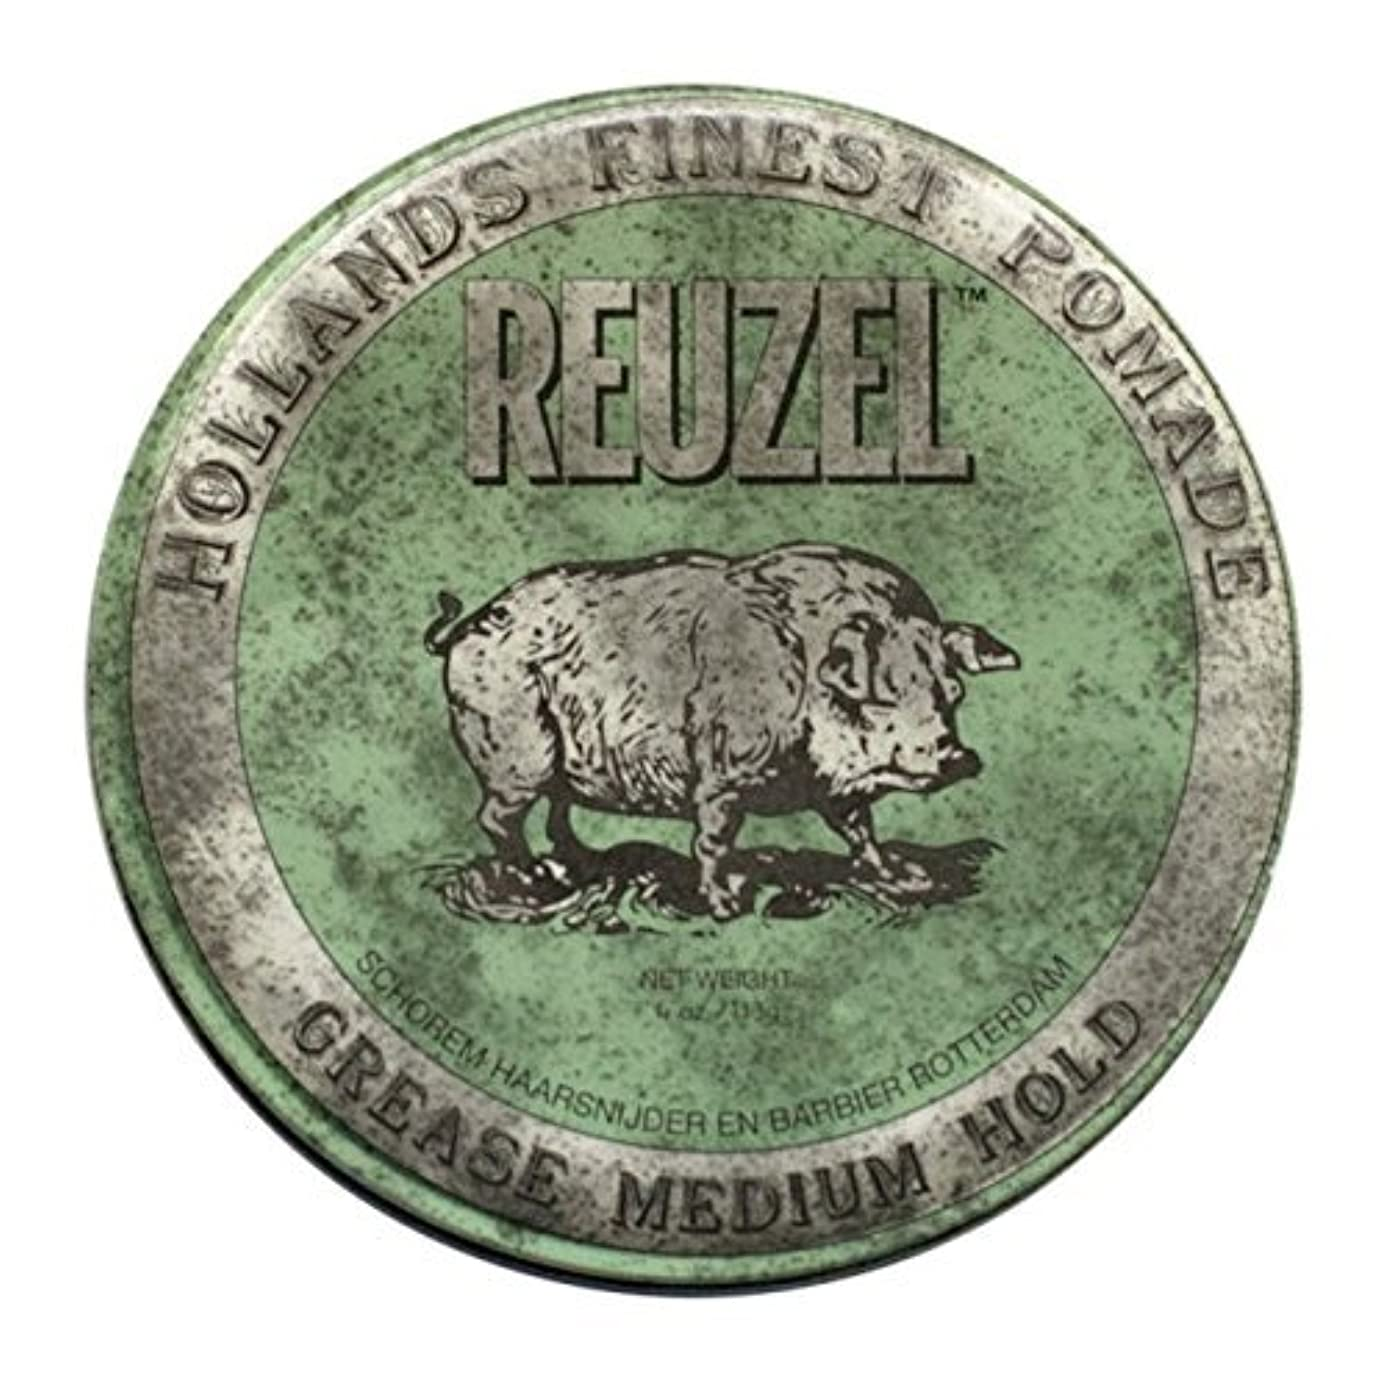 模索コンクリート天国REUZEL Grease Hold Hair Styling Pomade Piglet Wax/Gel, Medium, Green, 1.3 oz, 35g [並行輸入品]